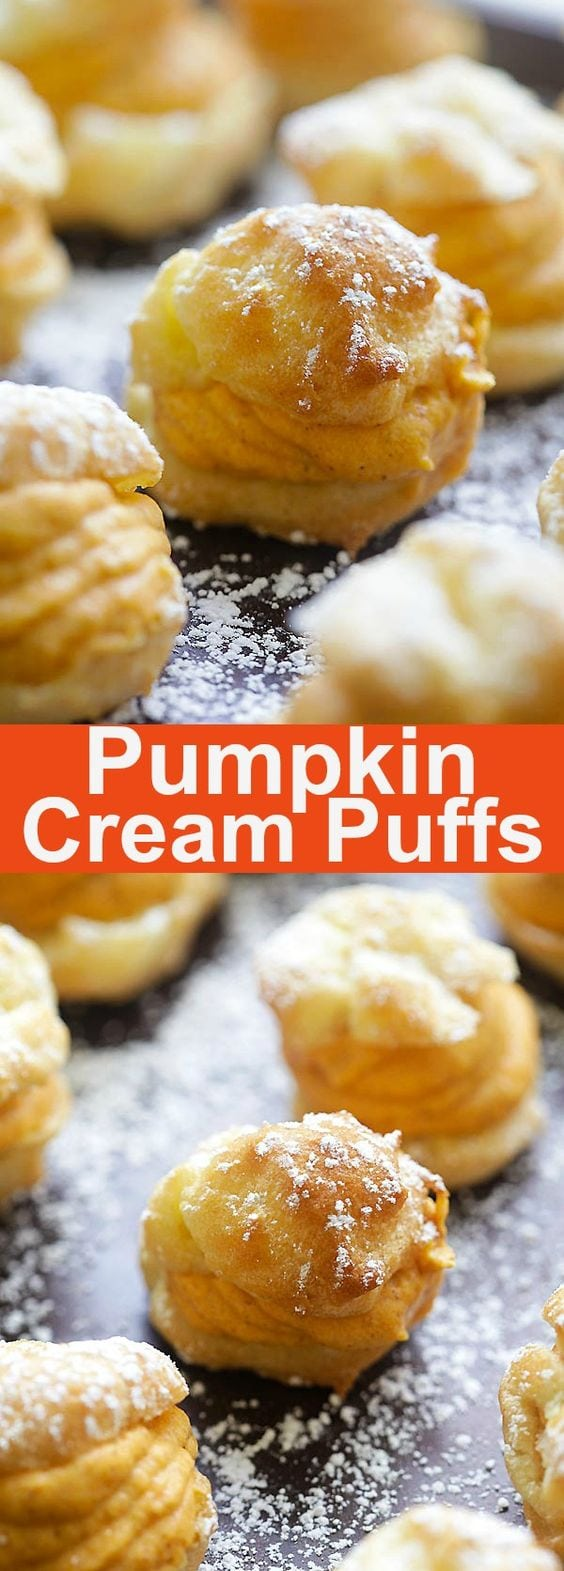 Pumpkin Cream Puffs - puffy choux pastry filled with sweet pumpkin cream filling. These pumpkin cream puffs are perfect for the holidays | rasamalaysia.com